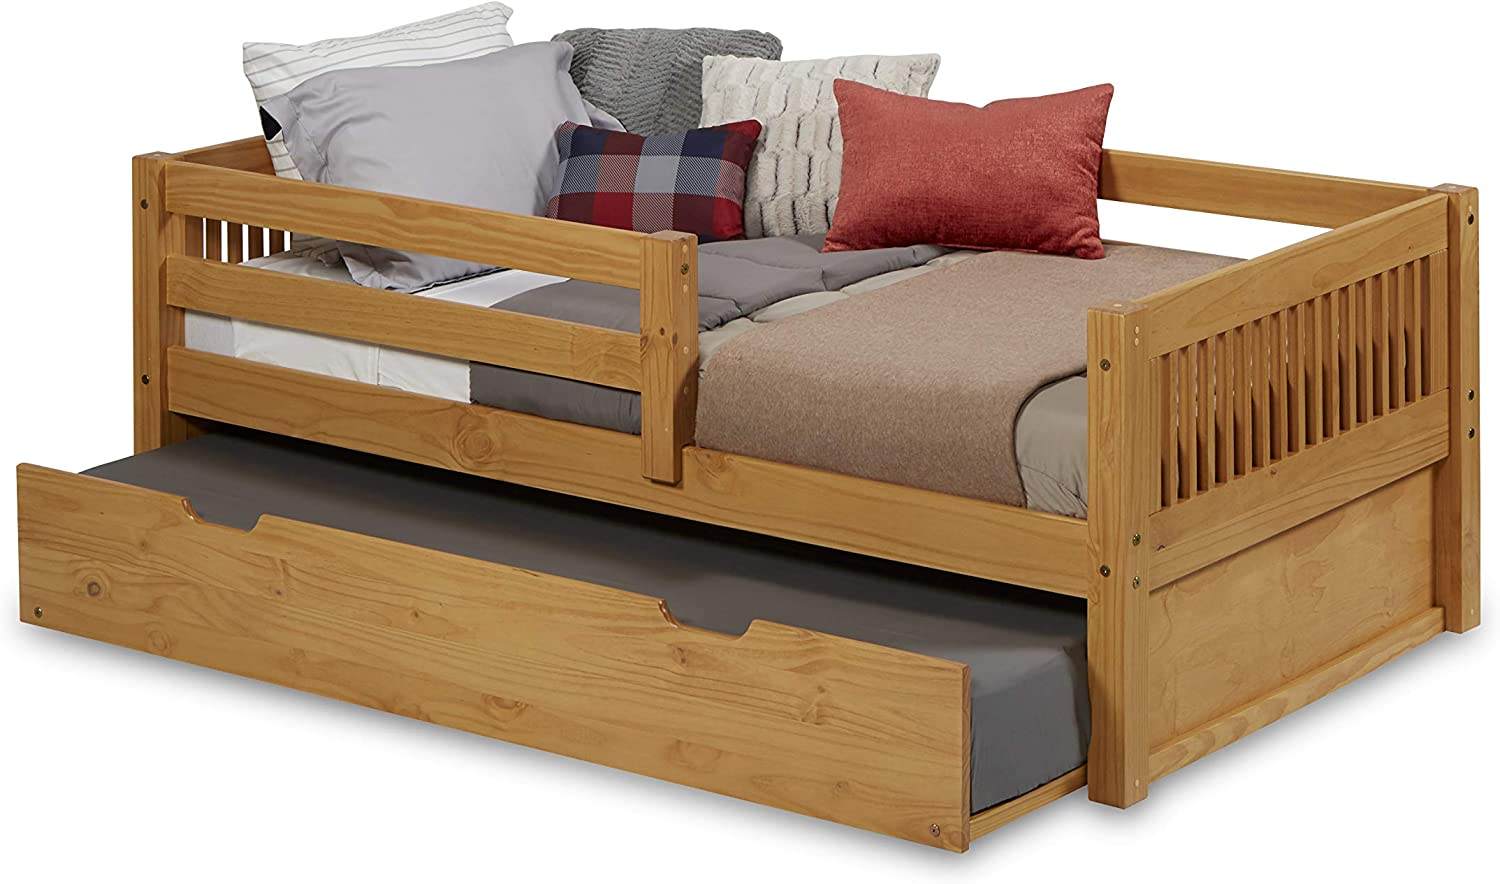 Camaflexi Mission Style Solid Wood Day Bed with Trundle and Front Rail Guard, Twin, Natural